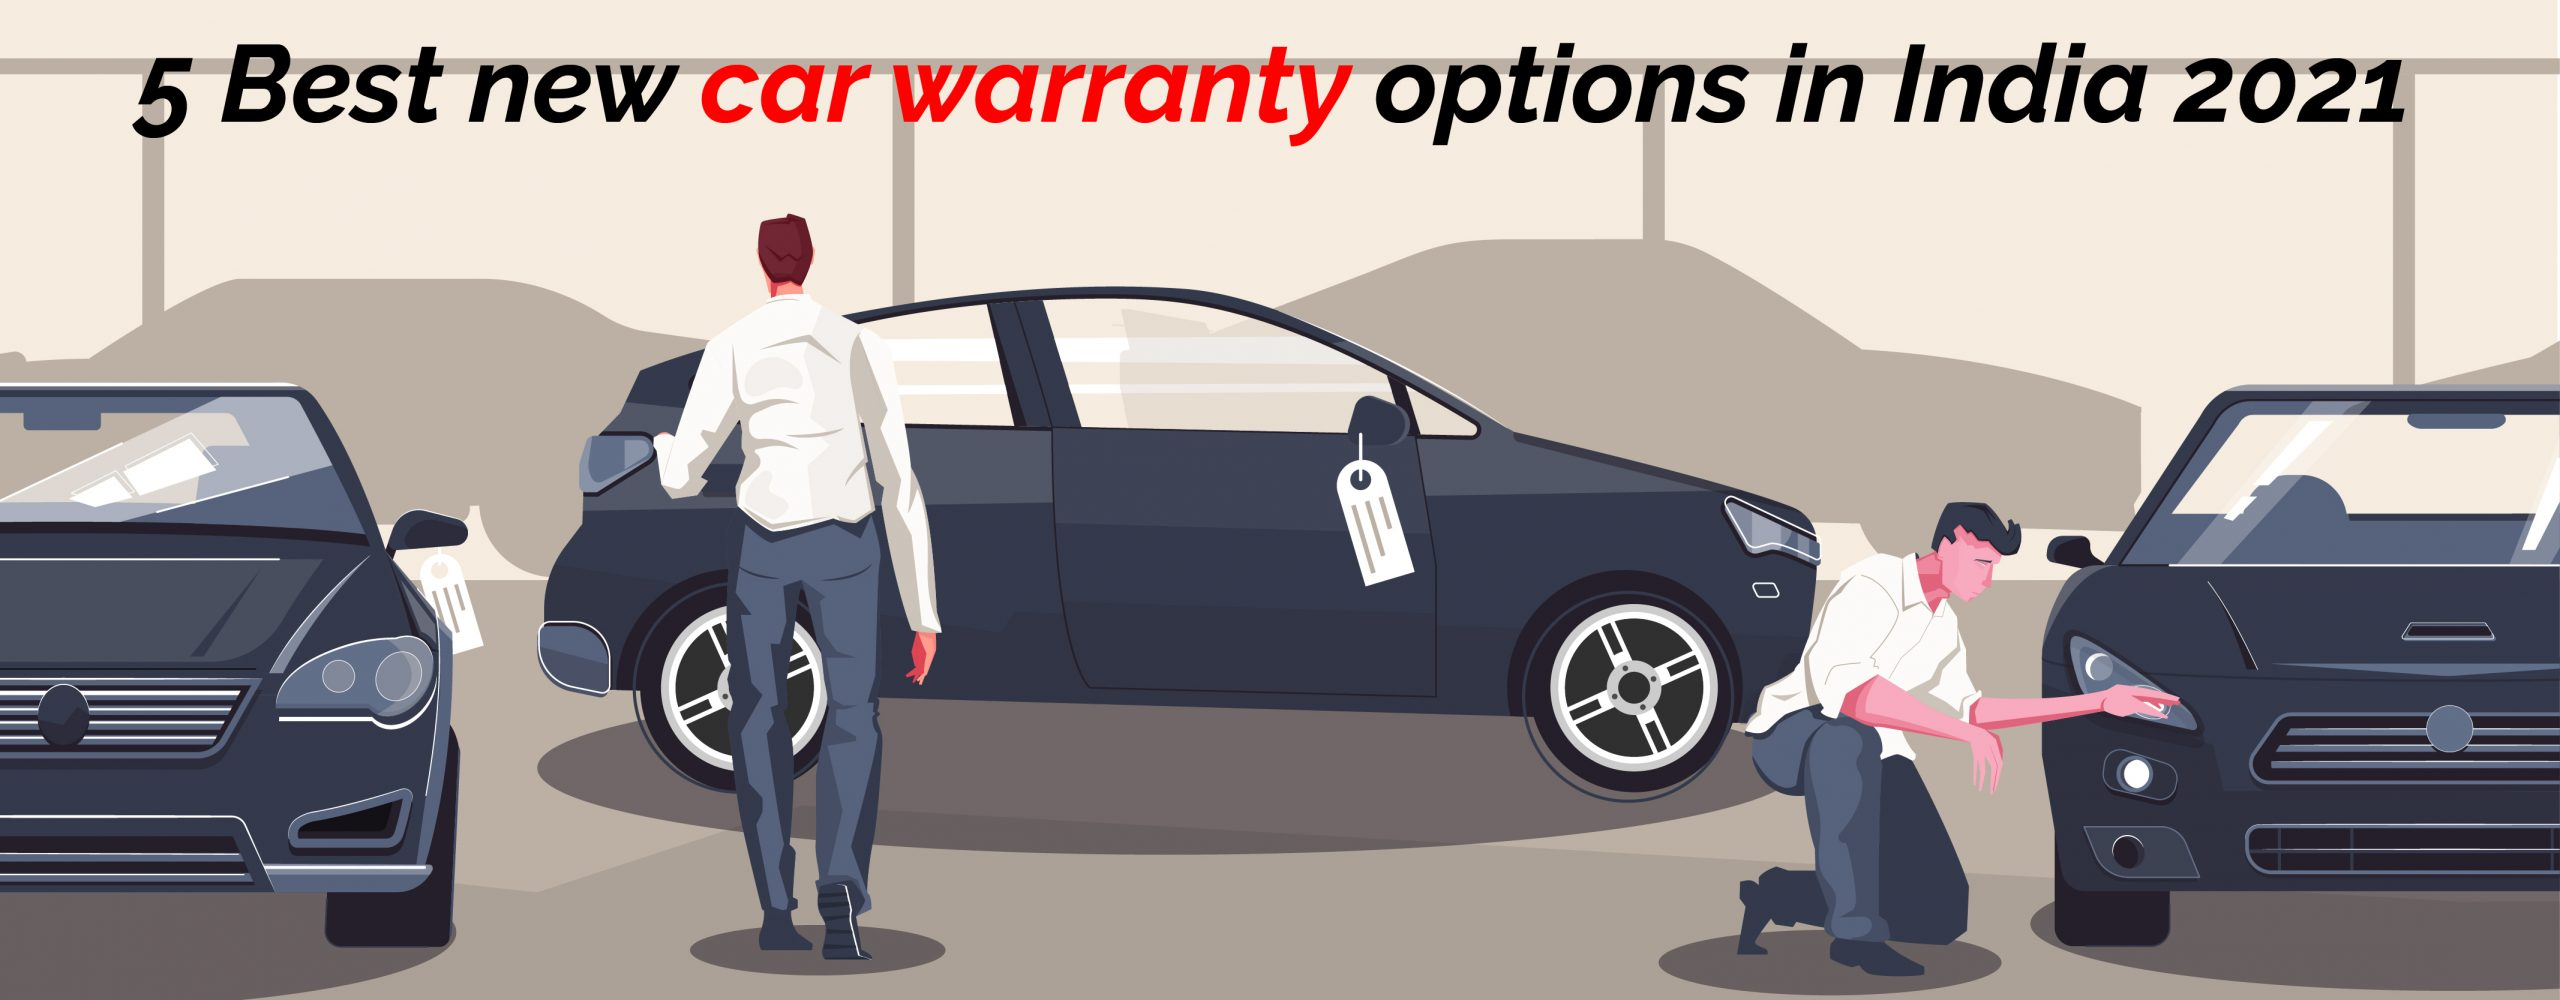 5 Best new car warranty options in India